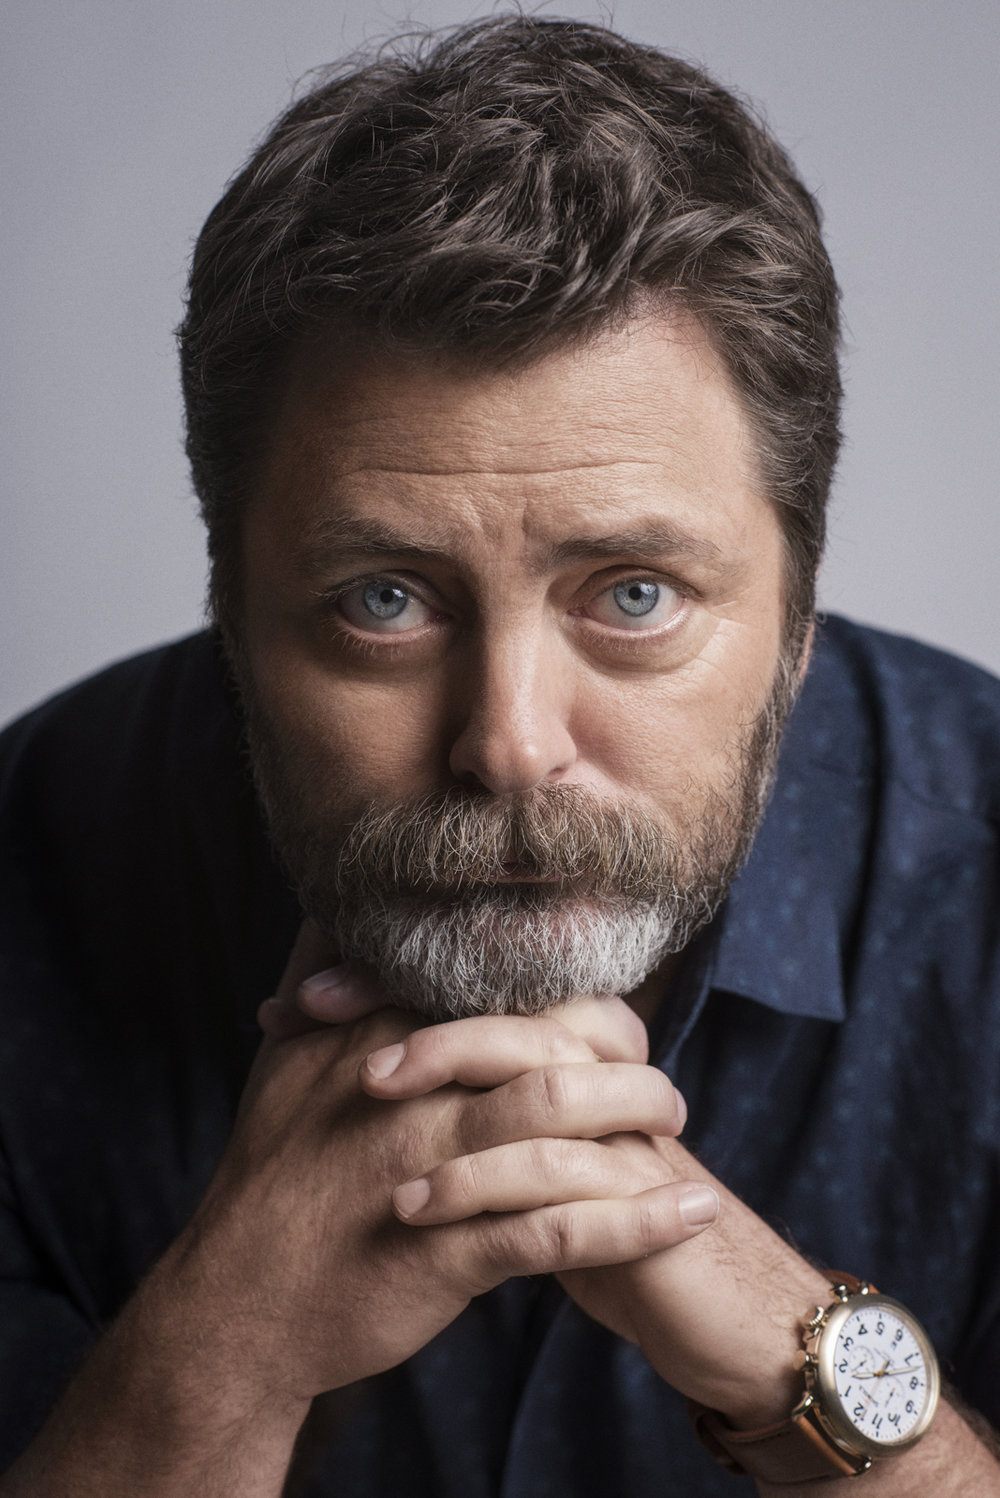 31_20160701_Audible_NickOfferman_21126_v1.jpg